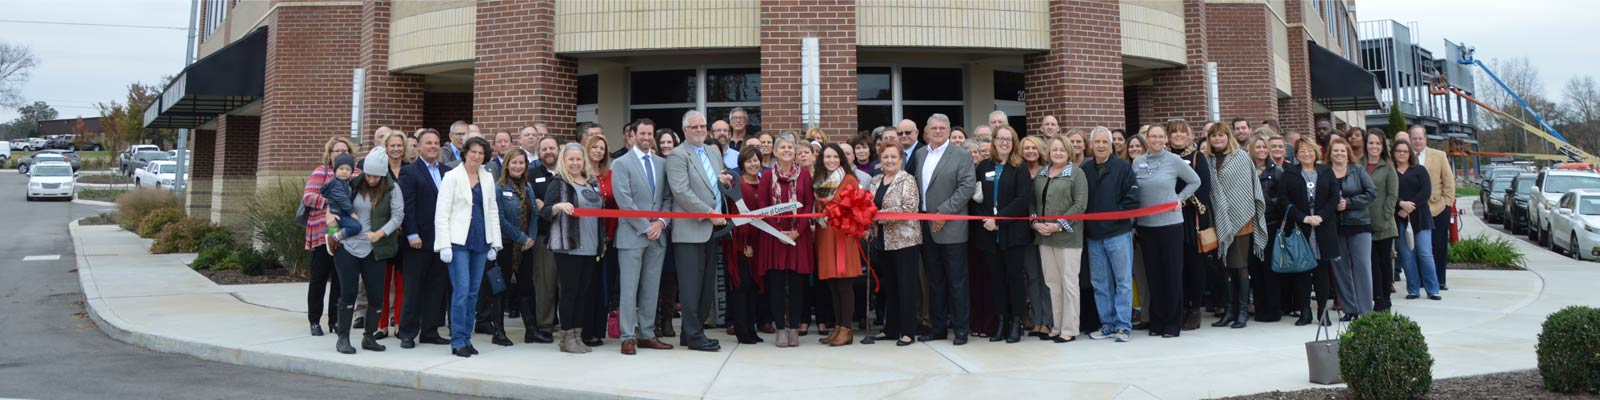 std-header_mt-juliet-chamber-of-commerce-ribbon-cutting.jpg